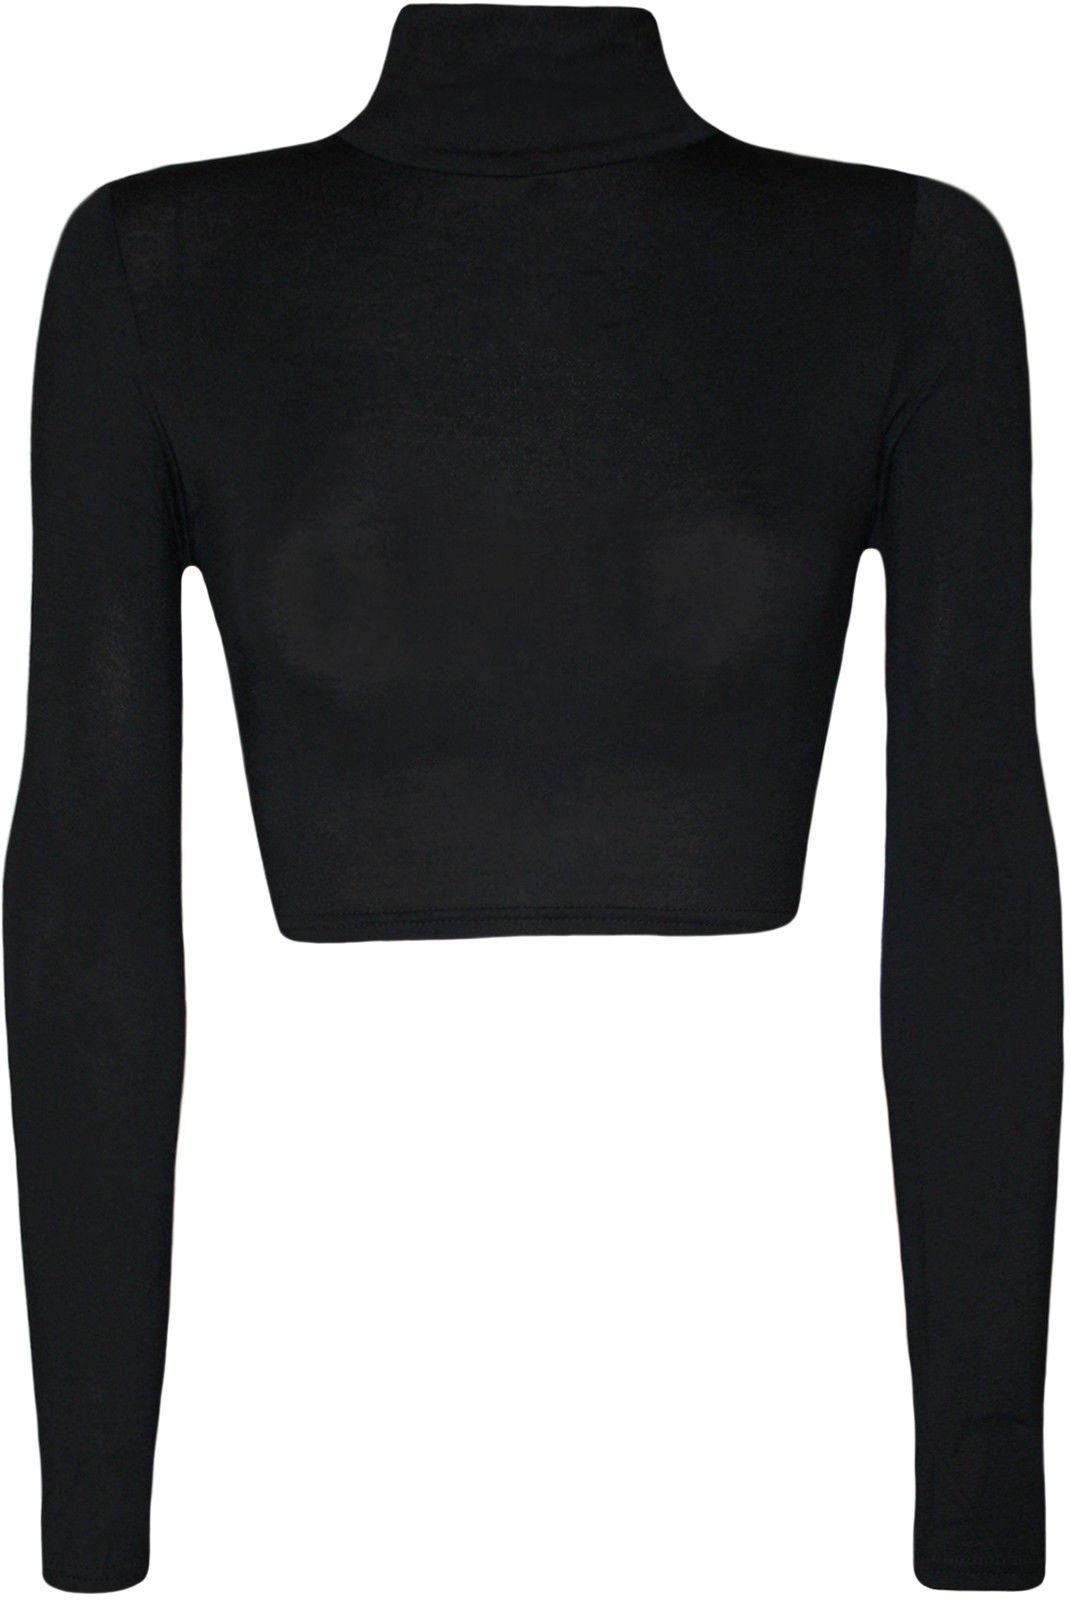 Womens Turtle Neck Crop Long Sleeve Plain Top---Thin Fabric BLACK-S/M